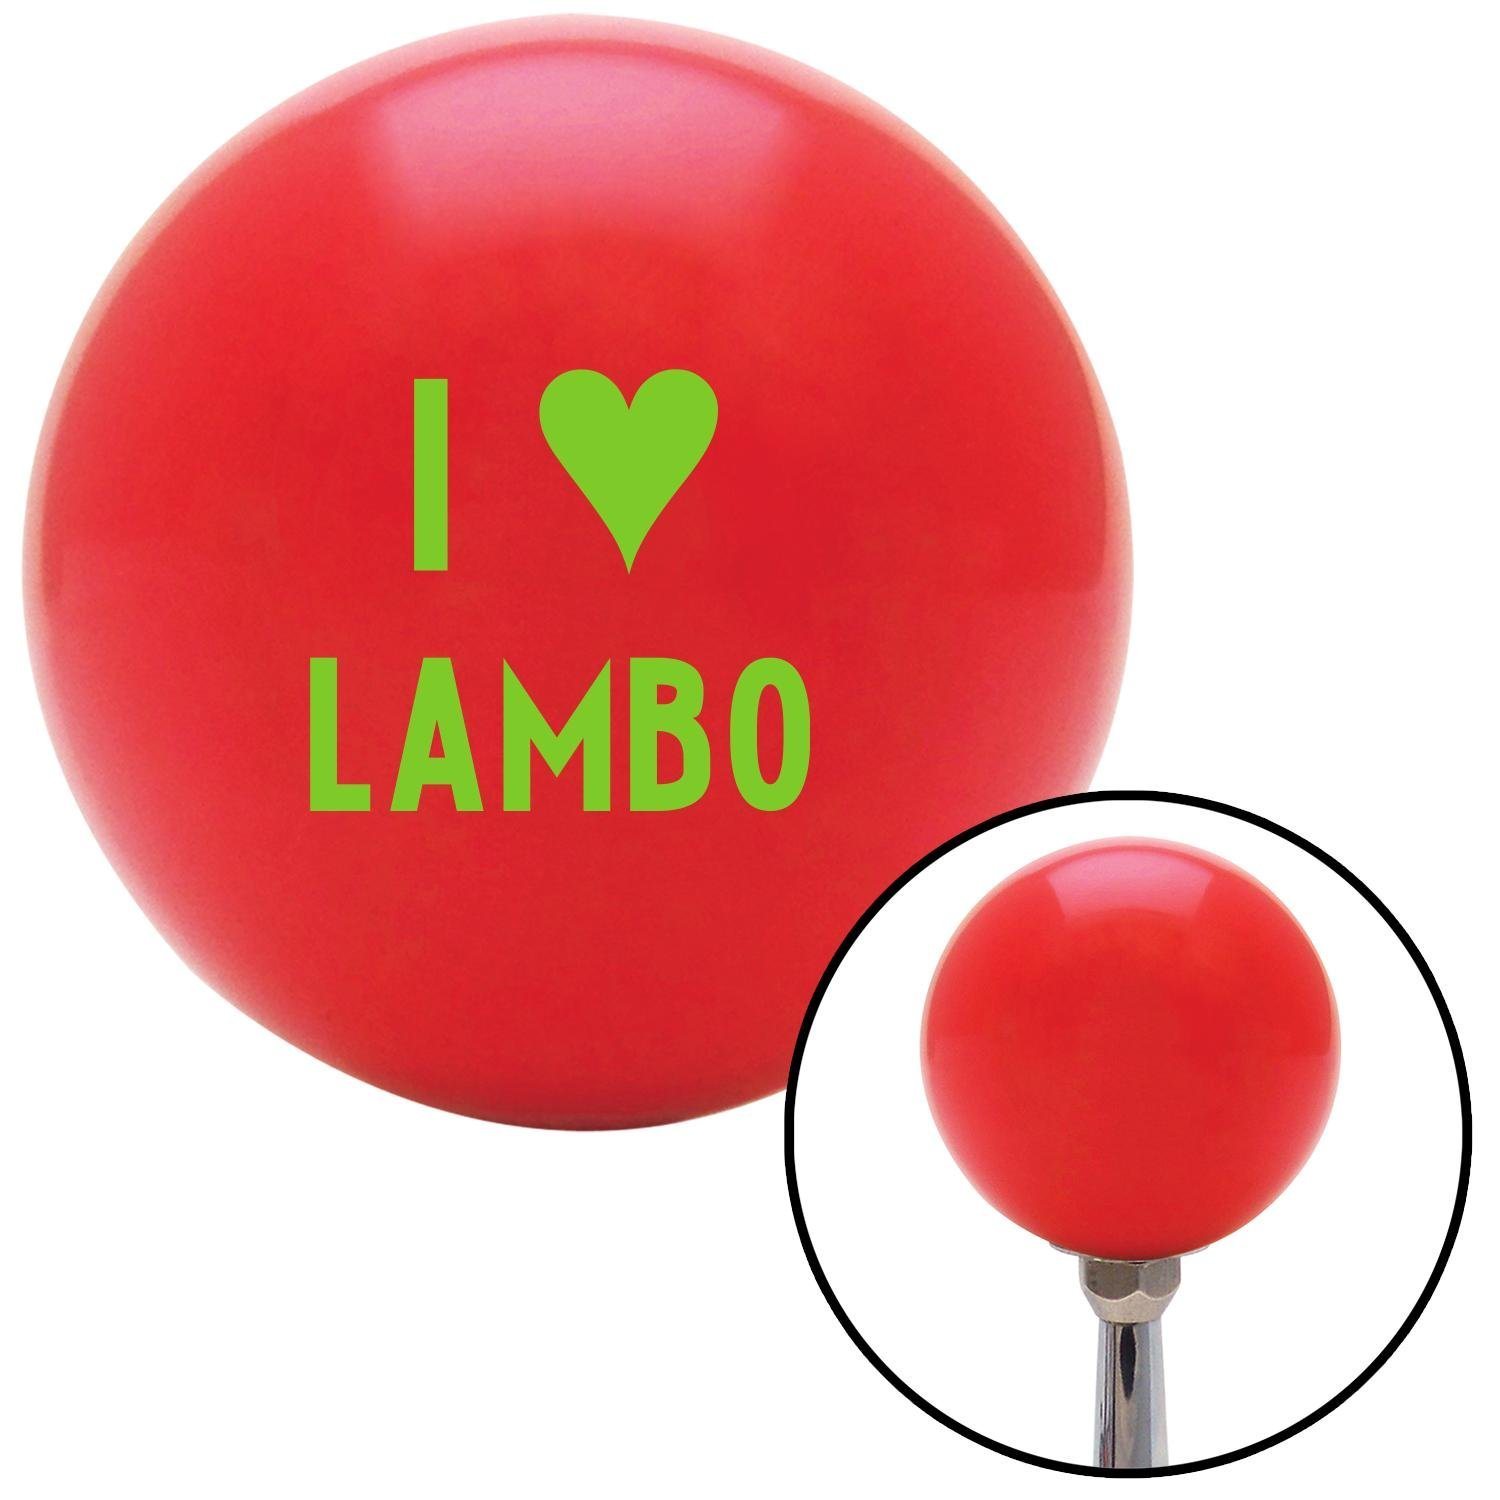 Green I 3 Lambo American Shifter 96724 Red Shift Knob with M16 x 1.5 Insert